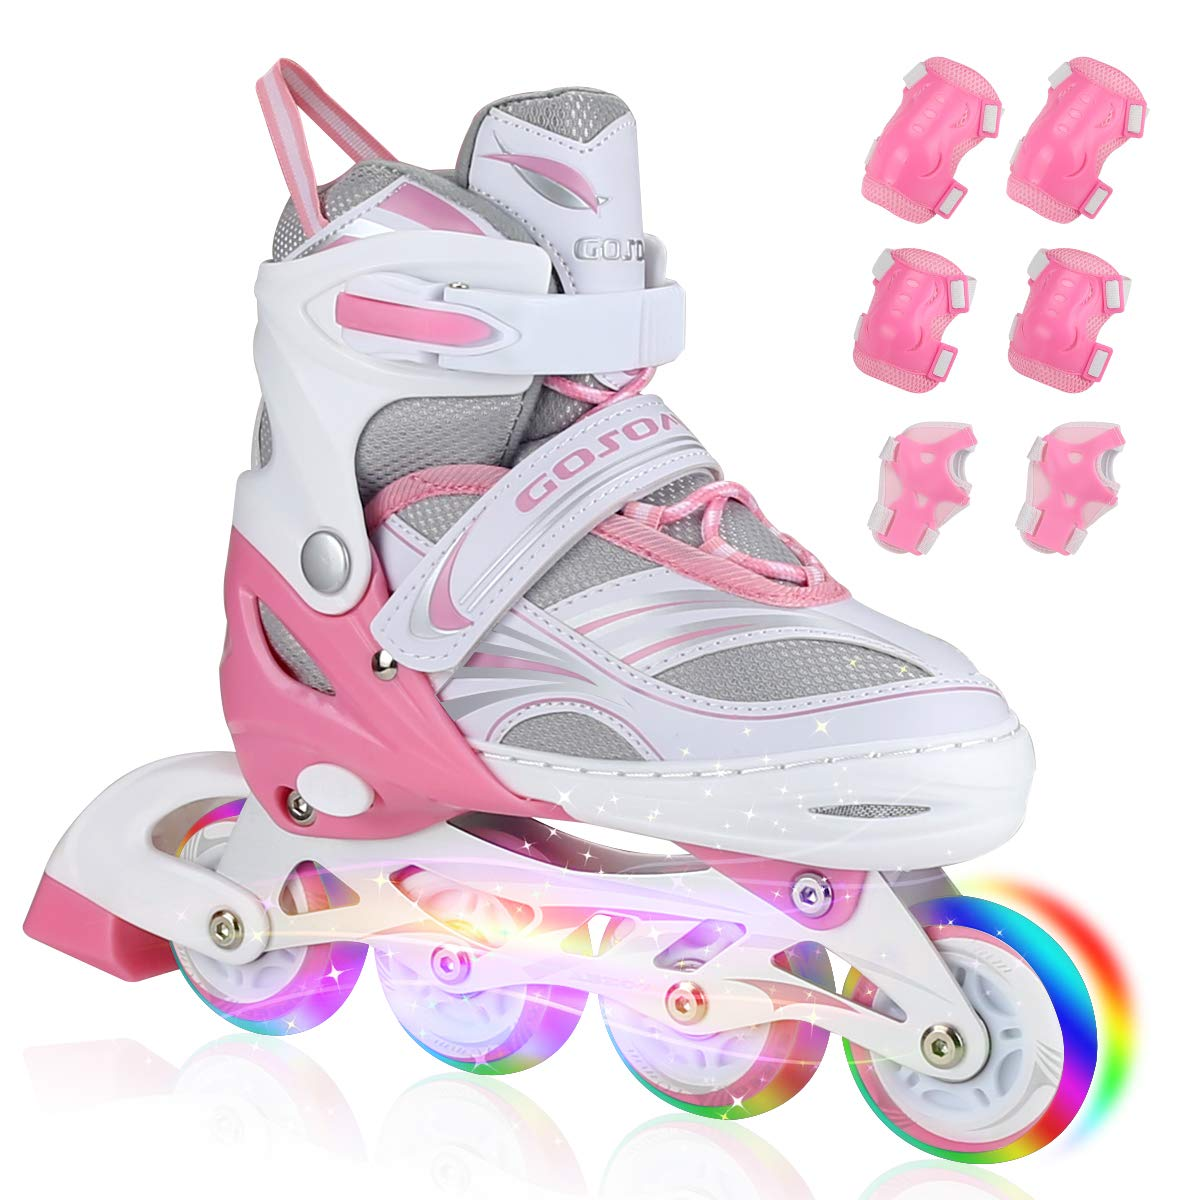 PETUOL Kids Inline Skates, Christmas Adjustable and Safe Durable Children Roller Skates with All 8 Full Light Up Illuminating Wheels, Fashionable Outdoor Sport Skates for Girls and Ladies